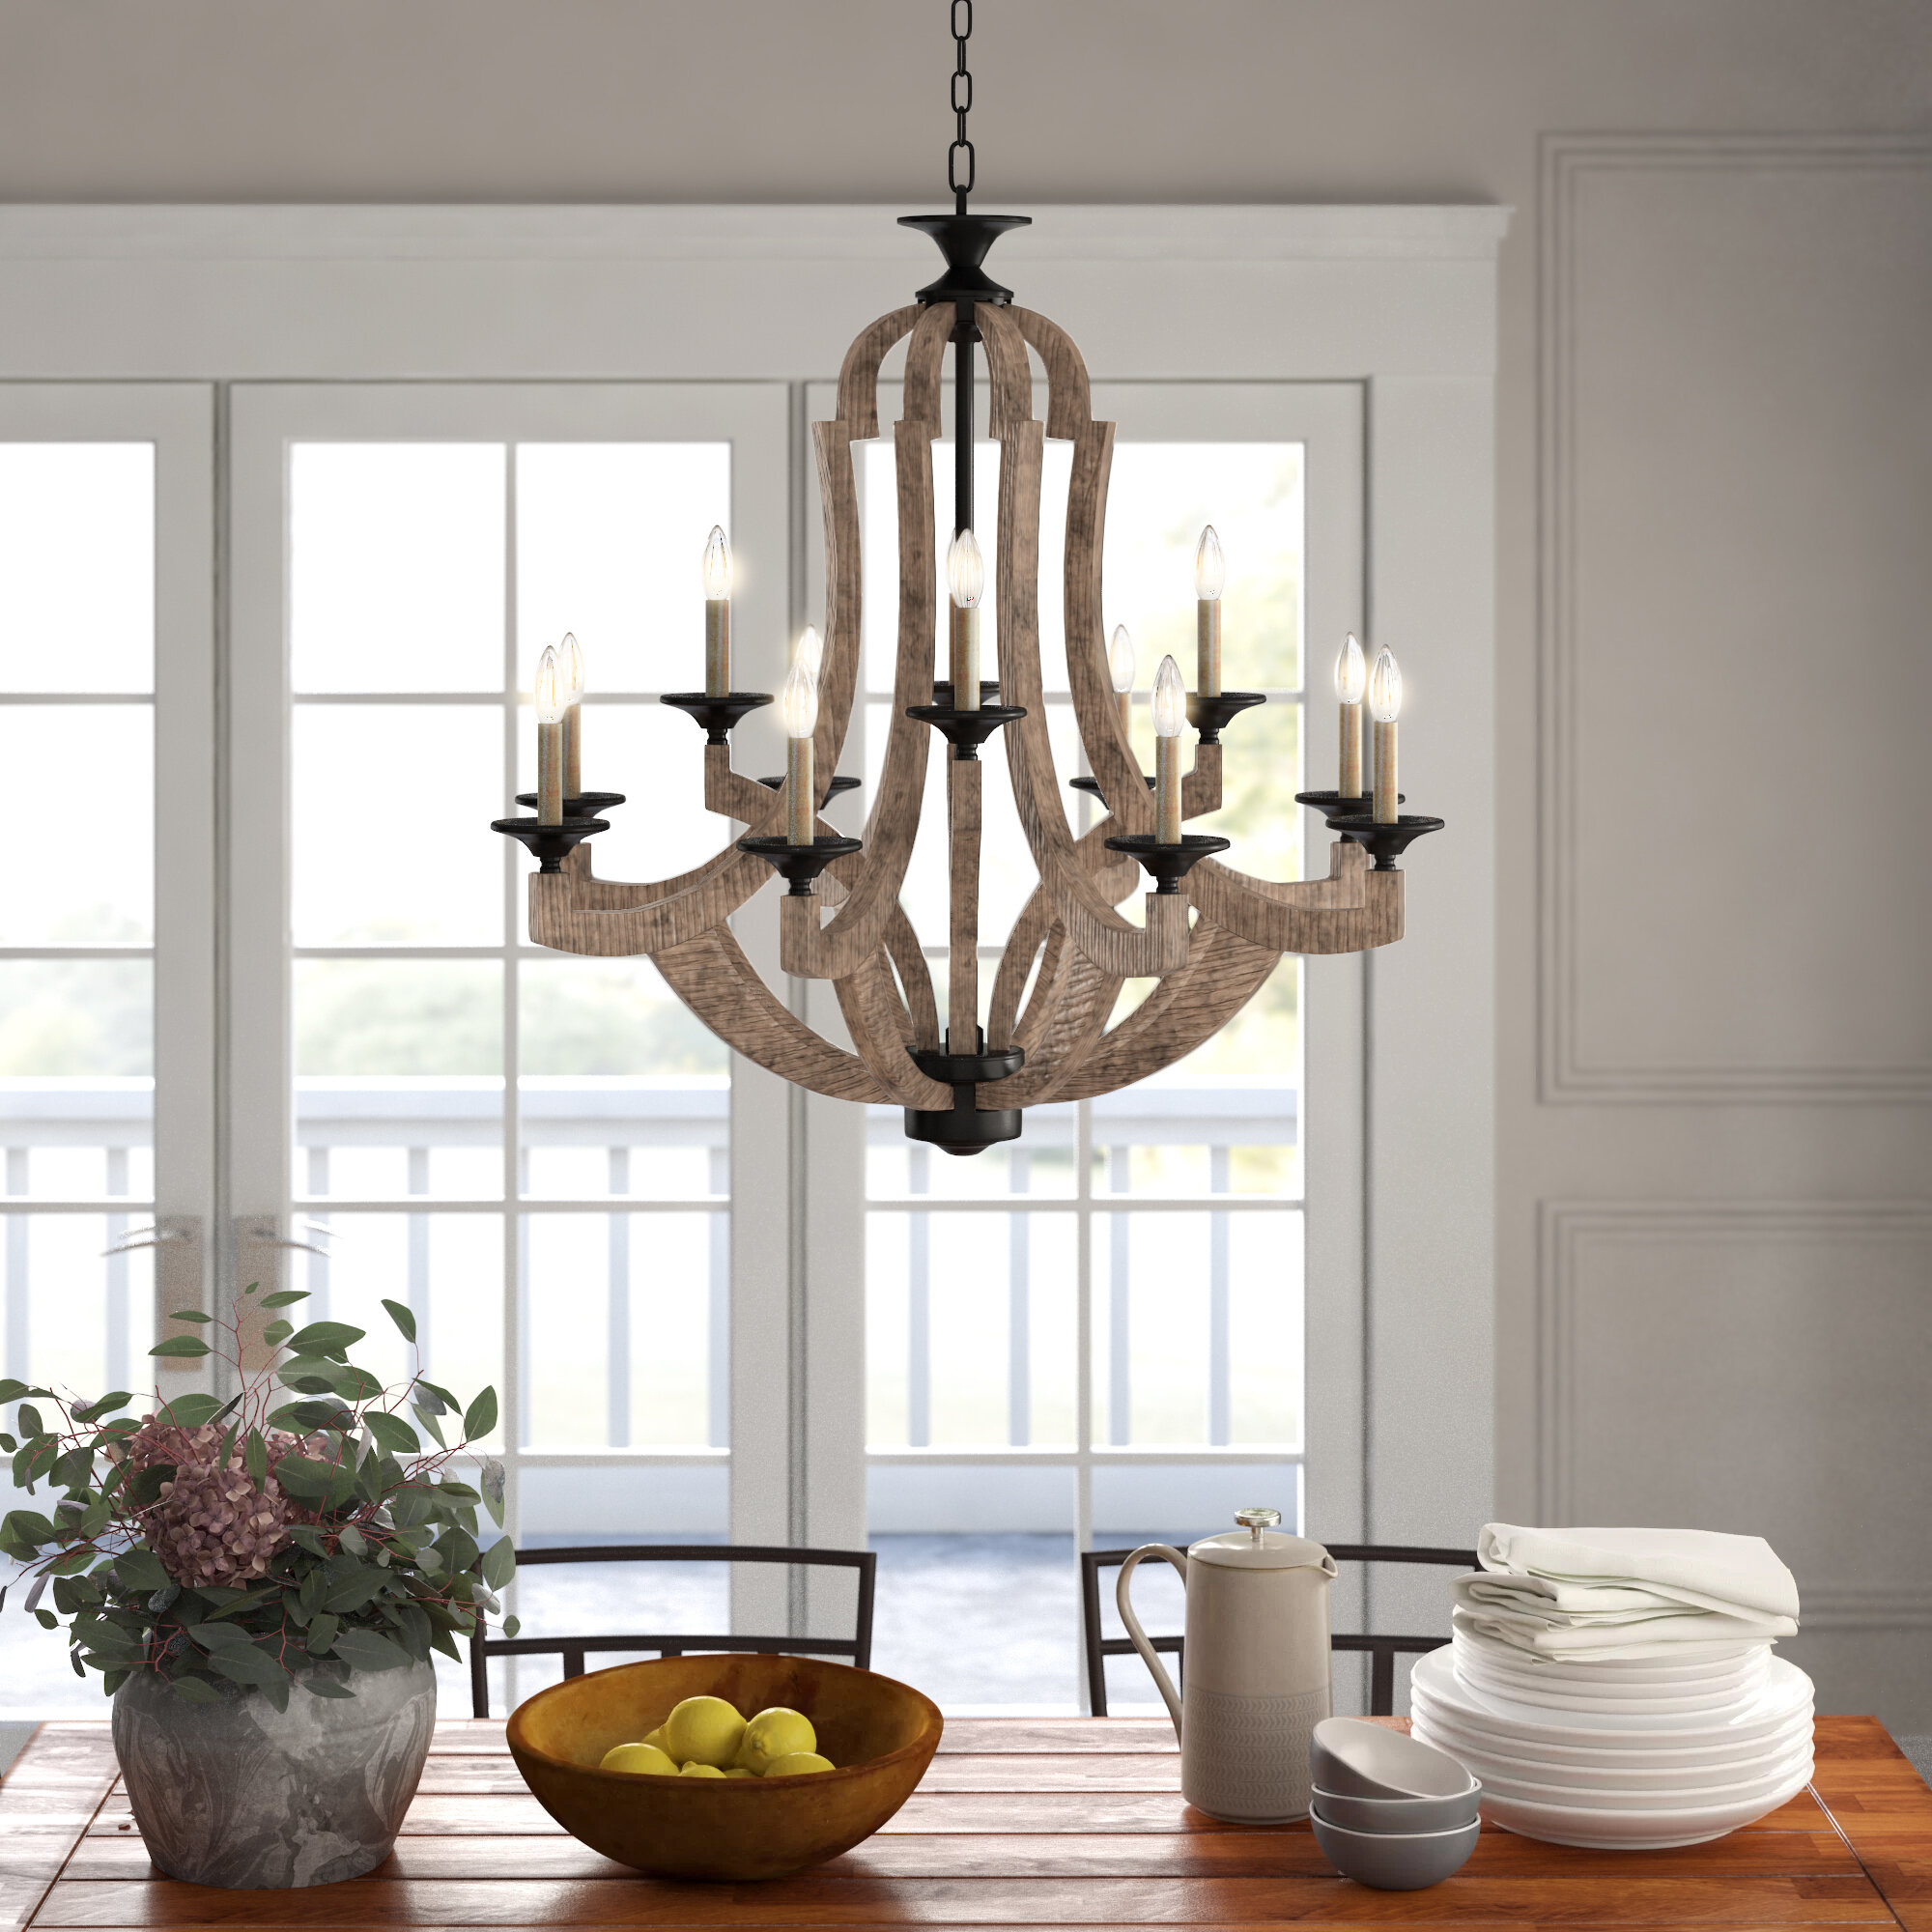 Oversized Greater Than 35 Wide Rustic Chandeliers You Ll Love In 2021 Wayfair